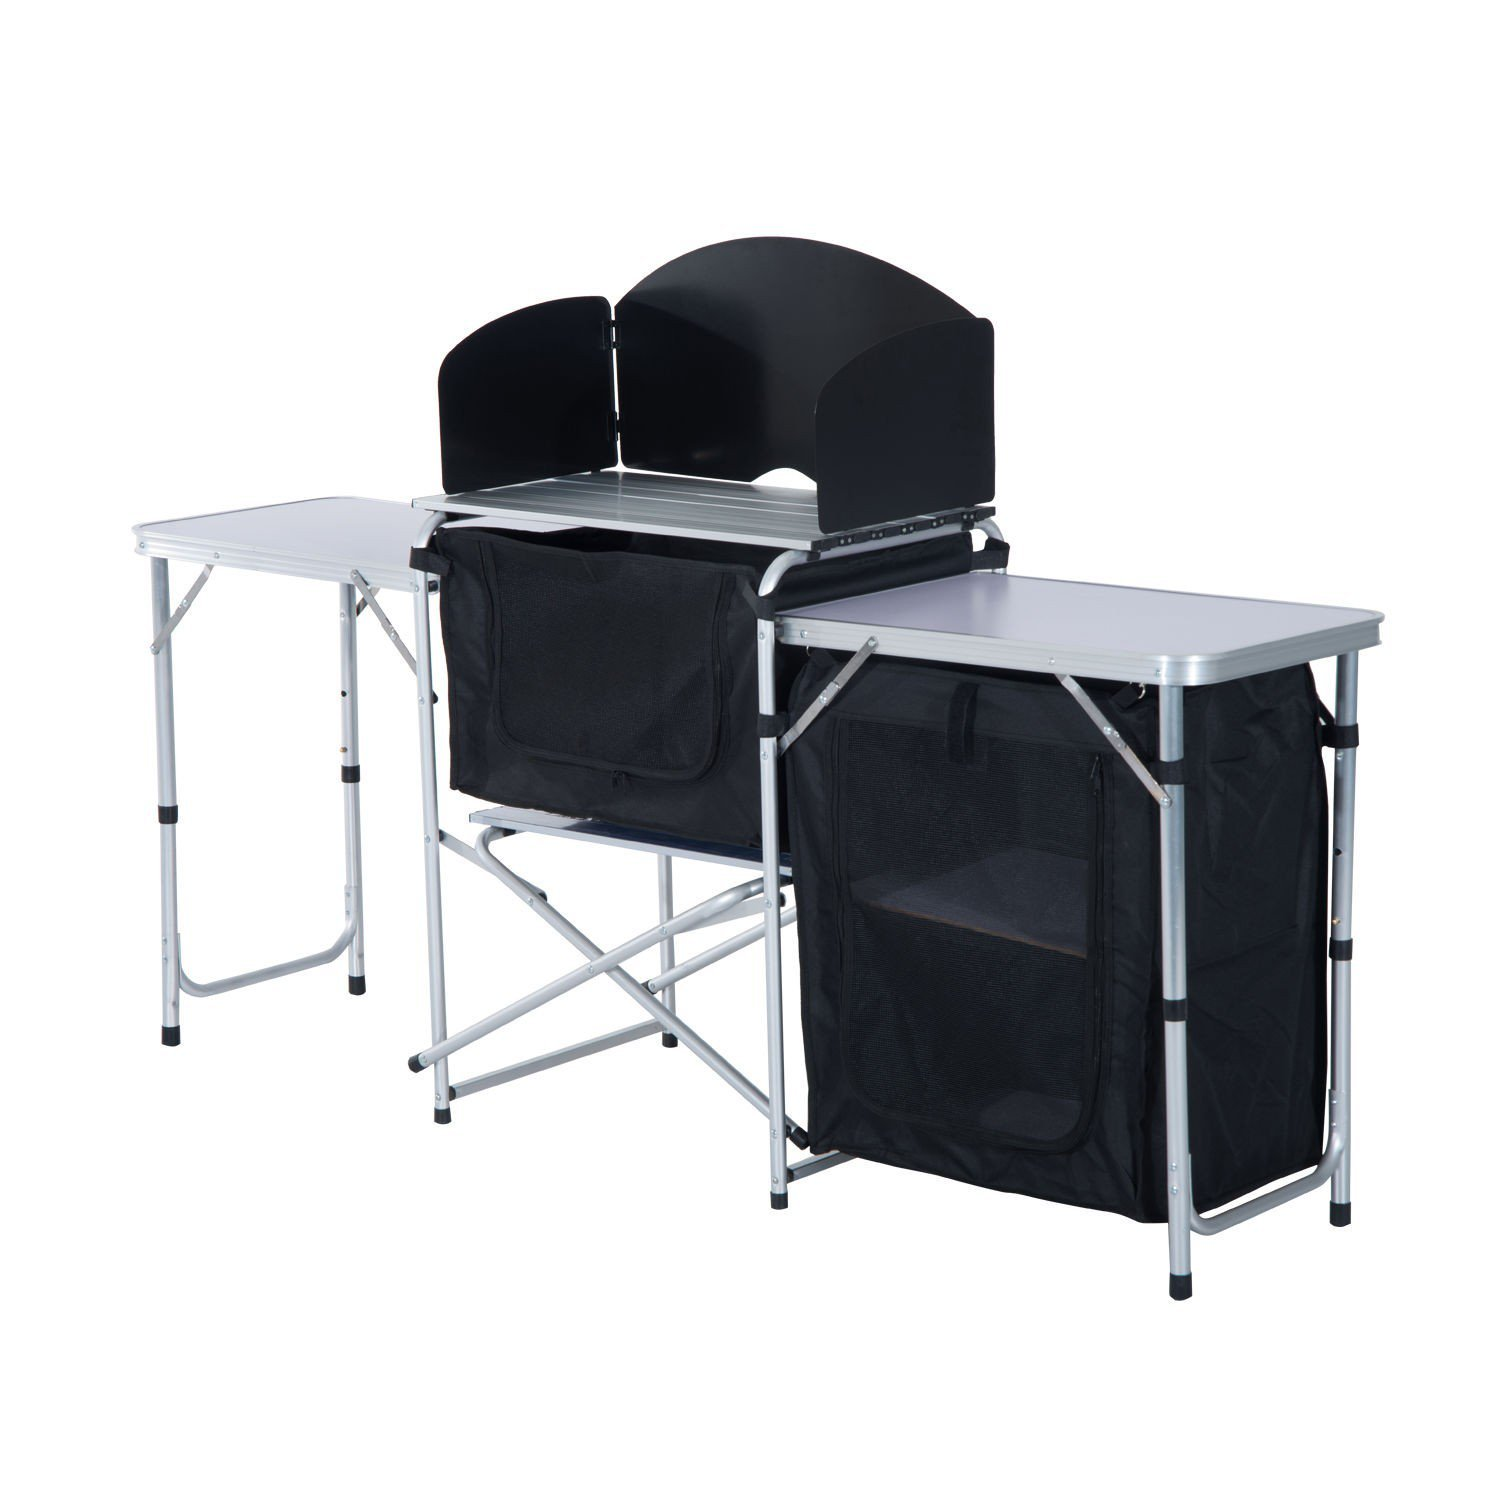 Portable 6' Fold-Up Camping Kitchen Table w/Windscreen Backyard Party With Ebook